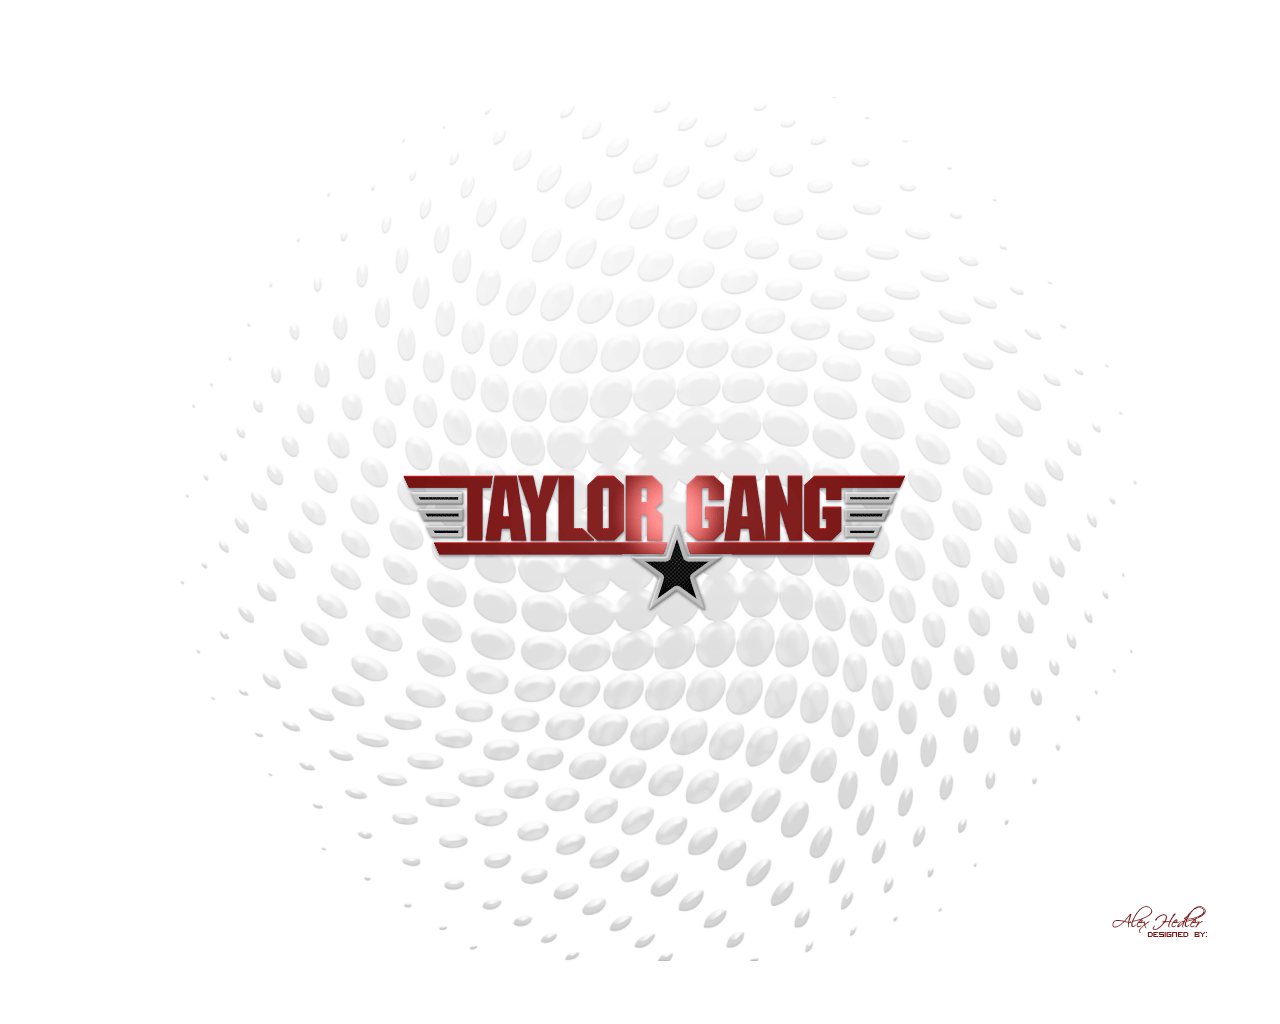 Taylor Gang Logo Wallpaper Taylor Gang Wallpaper 2 by